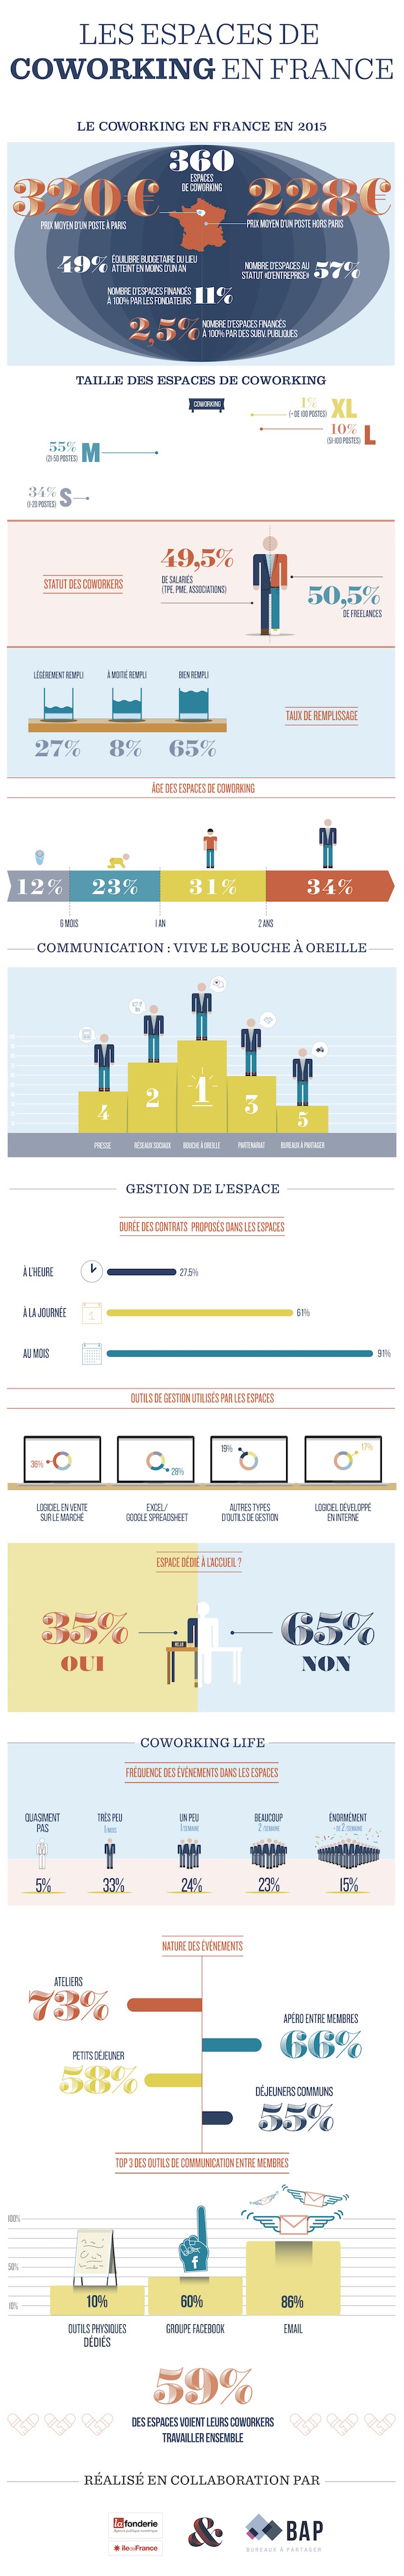 Infographie Coworking BAP